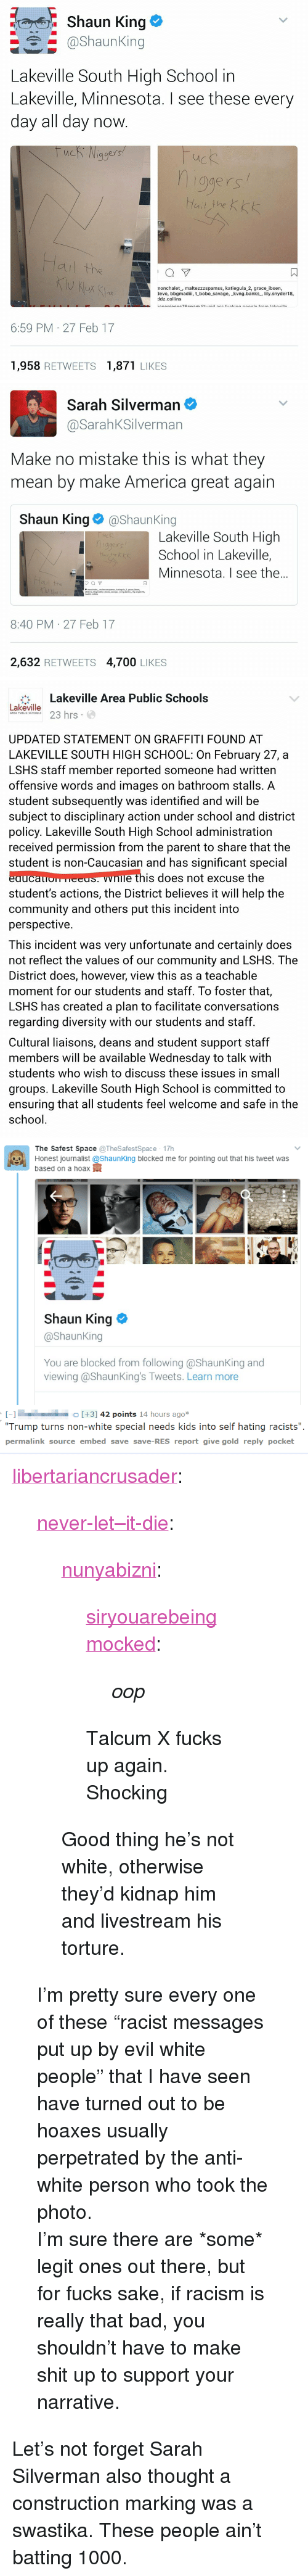 America, Bad, and Community: Shaun King e  @shaunking  Lakeville South High School in  Lakeville, Minnesota. I see these every  day all day now  qgers  ис  ogers  ail the  ㄇ  nonchalet, maltezzzspamss, katiegula 2, grace ibsen,  devo, bbgmadiii, t bobo savage, _kvng.banks, lily.snyder18,  ddz.collins  6:59 PM 27 Feb 17  1,958 RETWEETS1,871 LIKES   Sarah Silverman  @SarahKSilverman  Make no mistake this is what they  mean by make America great again  Shaun King@ShaunKing  Lakeville South High  School in Lakeville,  Minnesota. I see the..  hige  Hail the k  aul the  只  8:40 PM 27 Feb 17  2,632 RETWEETS 4,700 LIKES   臺Lakeville Area Public Schools  Lakeville  ake 3 hrs  AREA PUBLIC SCHOOLS  UPDATED STATEMENT ON GRAFFITI FOUND AT  LAKEVILLE SOUTH HIGH SCHOOL: On February 27, a  LSHS staff member reported someone had written  offensive words and images on bathroom stalls. A  student subsequently was identified and will be  subject to disciplinary action under school and district  policy. Lakeville South High School administration  received permission from the parent to share that the  student is non-Caucasian and has significant special  eaucauom HEES nle this does not excuse the  student's actions, the District believes it will help the  community and others put this incident into  perspective  This incident was very unfortunate and certainly does  not reflect the values of our community and LSHS. The  District does, however, view this as a teachable  moment for our students and staff. To foster that,  LSHS has created a plan to facilitate conversations  regarding diversity with our students and staff  Cultural liaisons, deans and student support staff  members will be available Wednesday to talk with  students who wish to discuss these issues in small  groups. Lakeville South High School is committed to  ensuring that all students feel welcome and safe in the  school   The Safest Space TheSafestSpace 17h  Honest journalist @ShaunKing blocked me for pointing out that hi